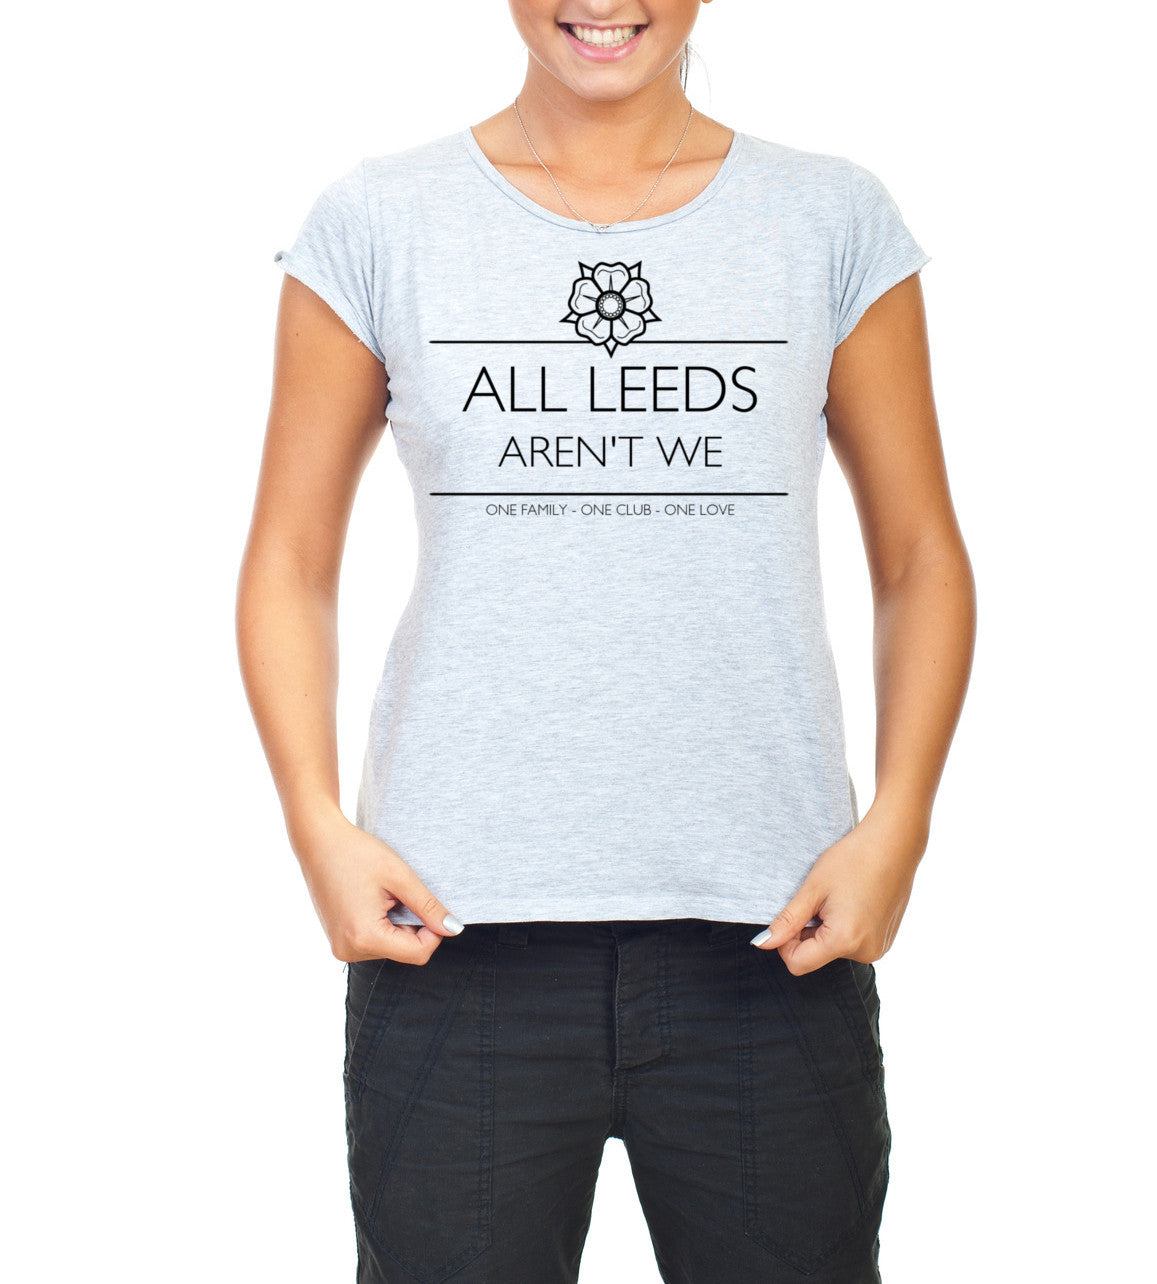 Women's Grey All Leeds aren't we T-shirt